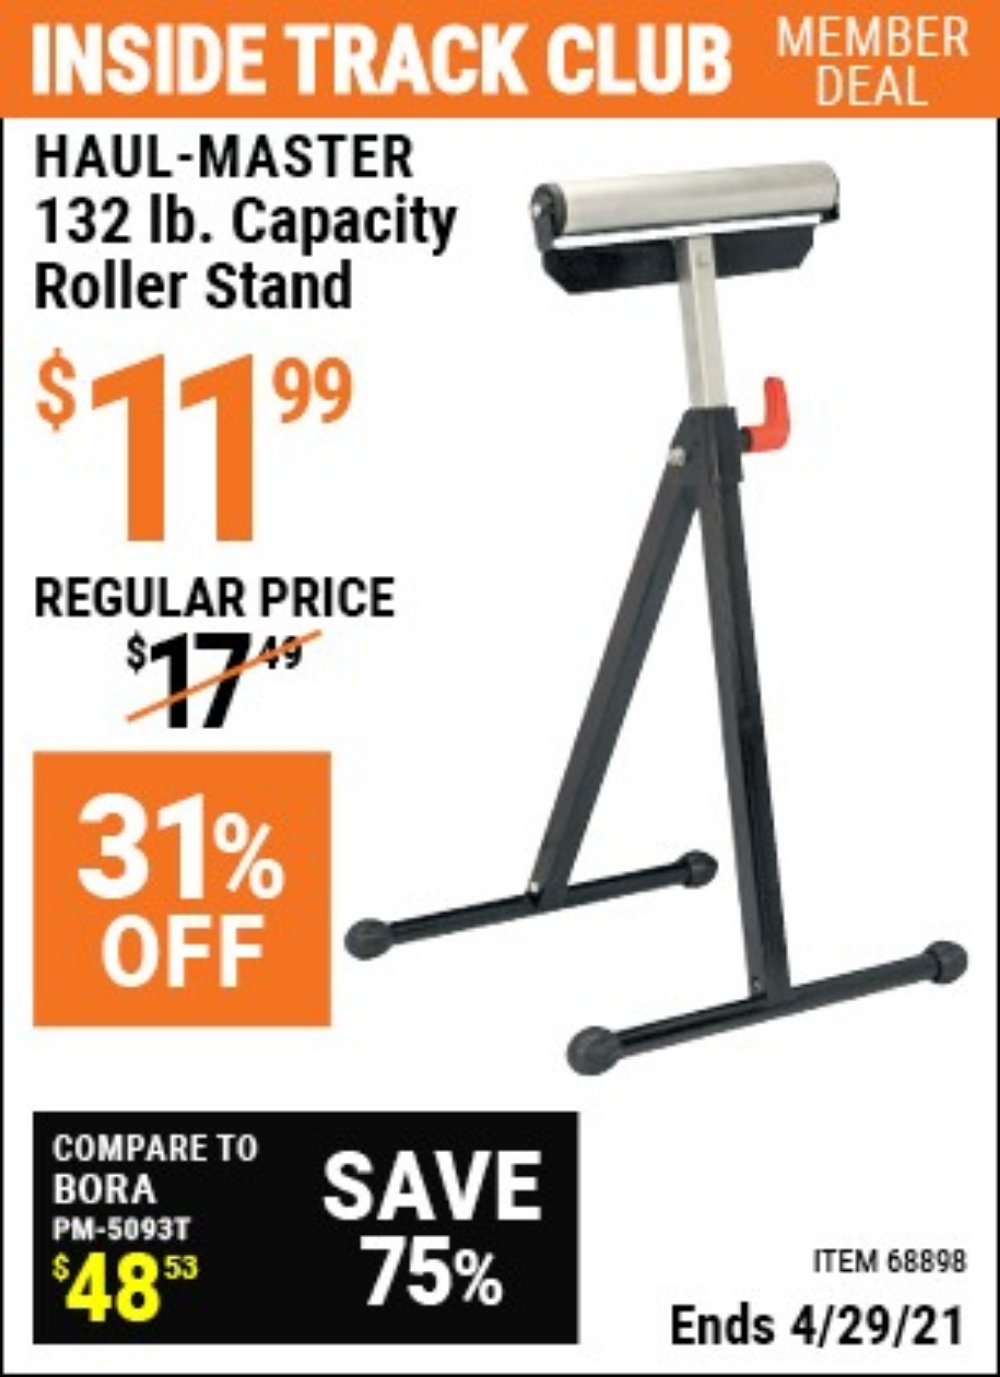 Harbor Freight Coupon, HF Coupons - 32lb. Capacity Roller Stand